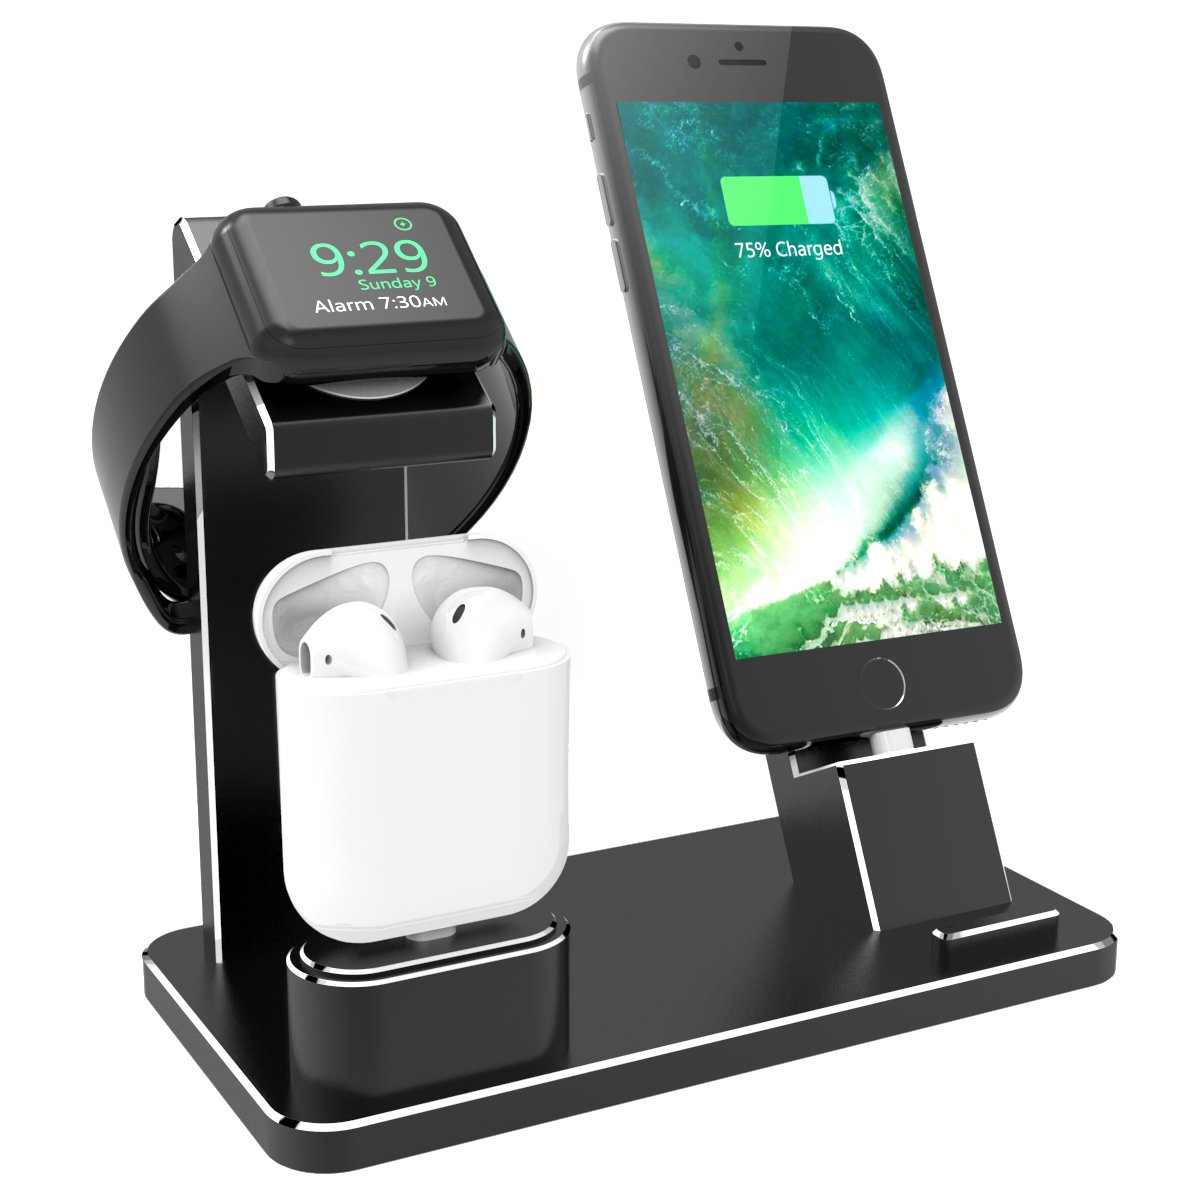 XUNMEJ Watch Stand for Apple Phone Charging Dock Aluminum 4 in 1 AirPods Charging Stand Accessories Station Holder for Apple Watch 4 3 2 1 AirPods Phone Xs X Max XR 7 7plus iPad Mini (Black) by XUNMEJ